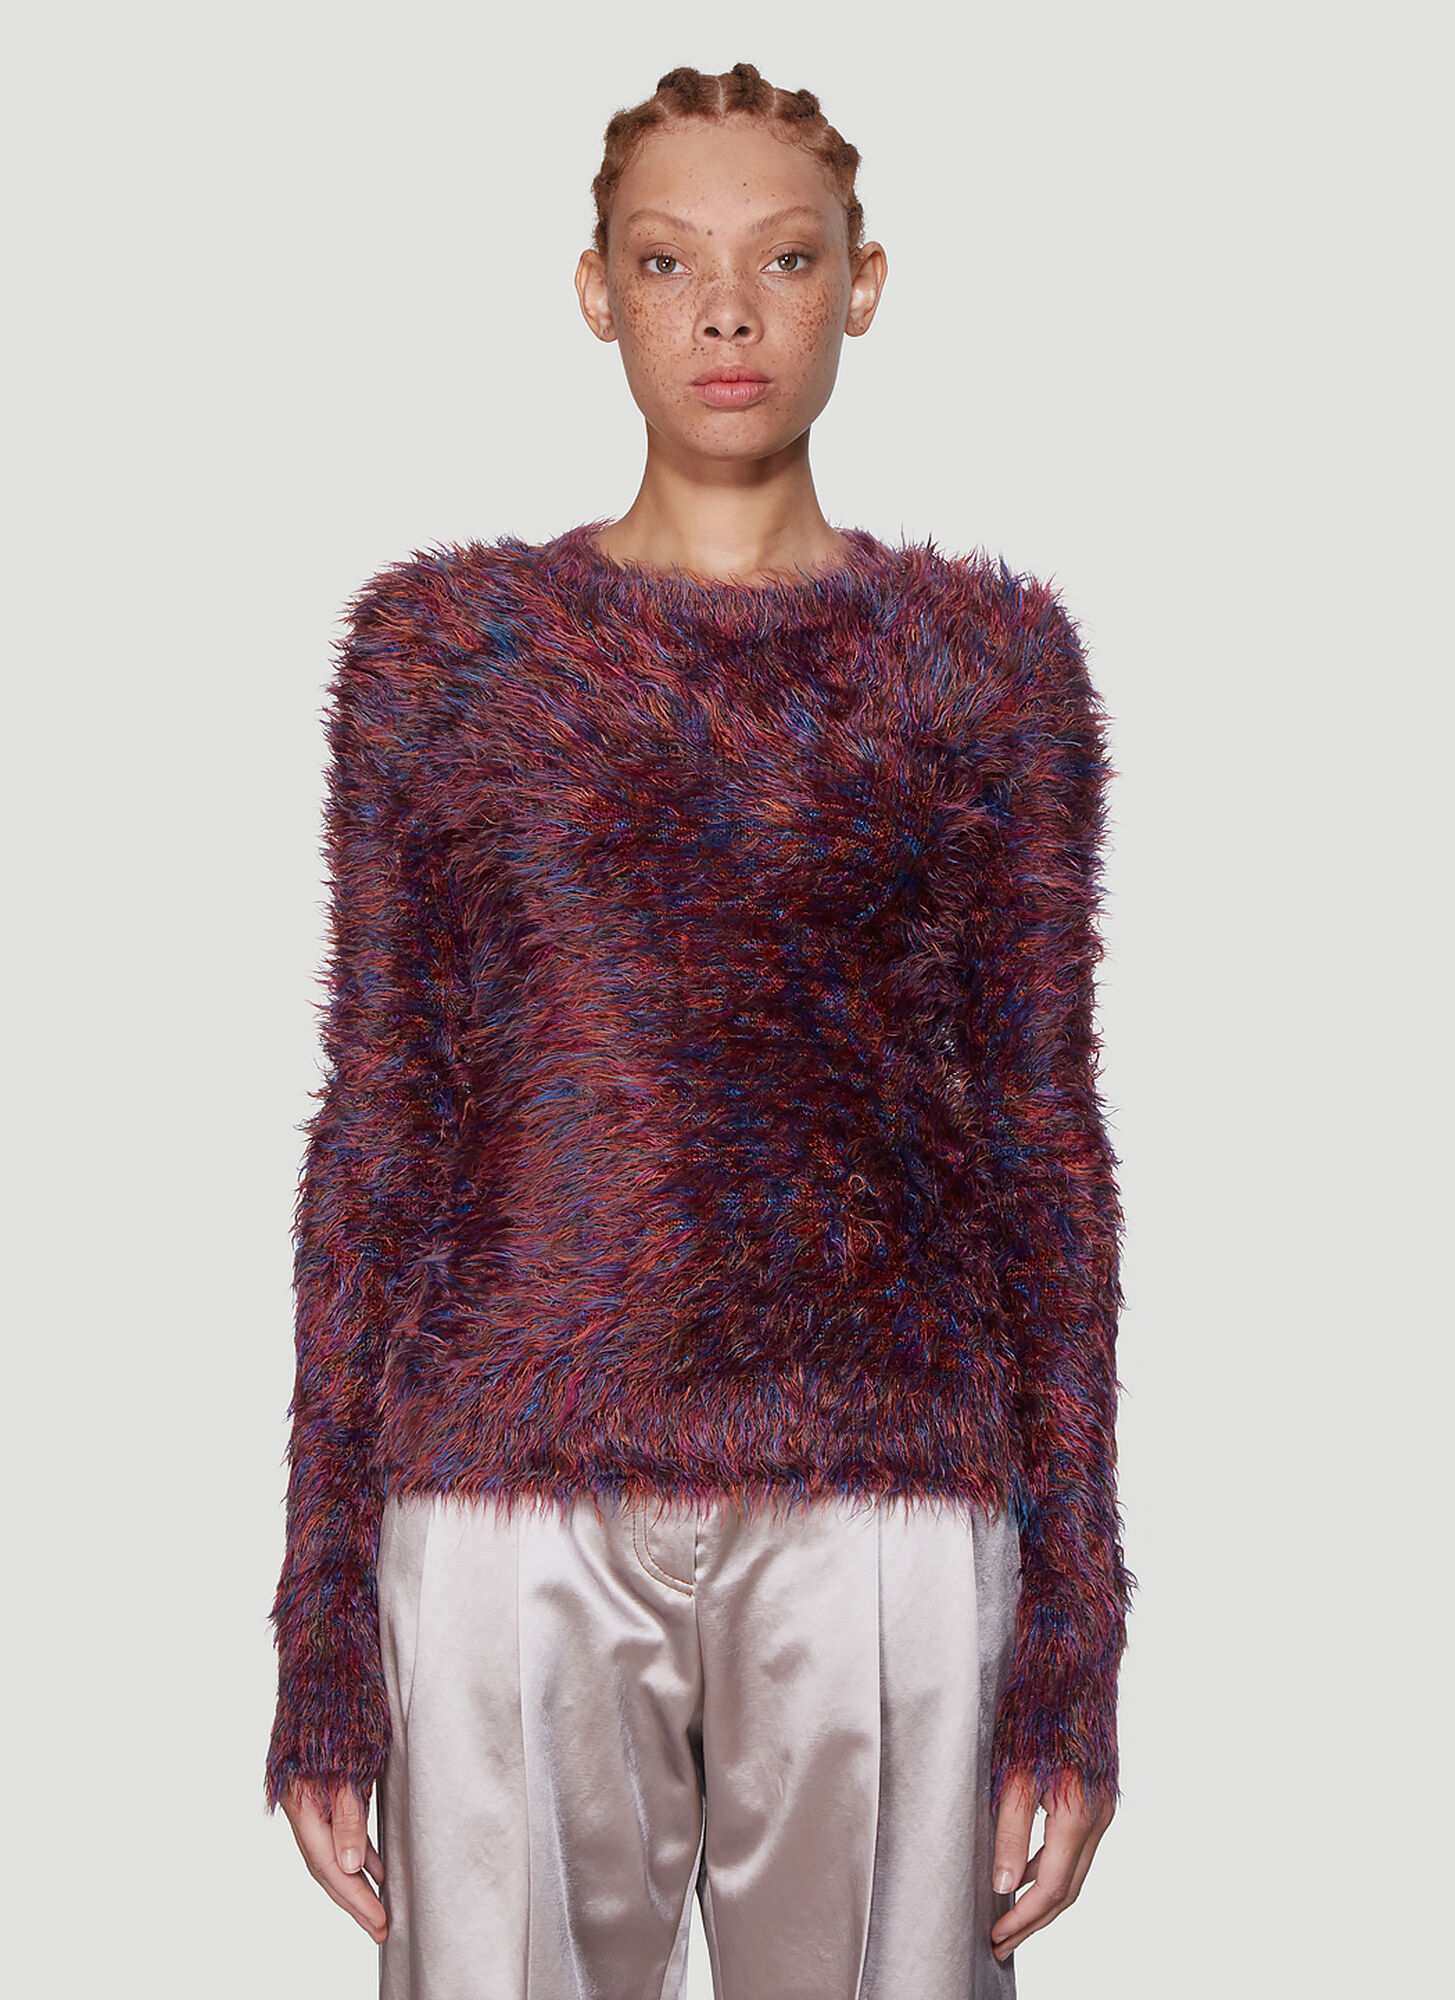 Sies Marjan Ange Crewneck Sweater in Purple